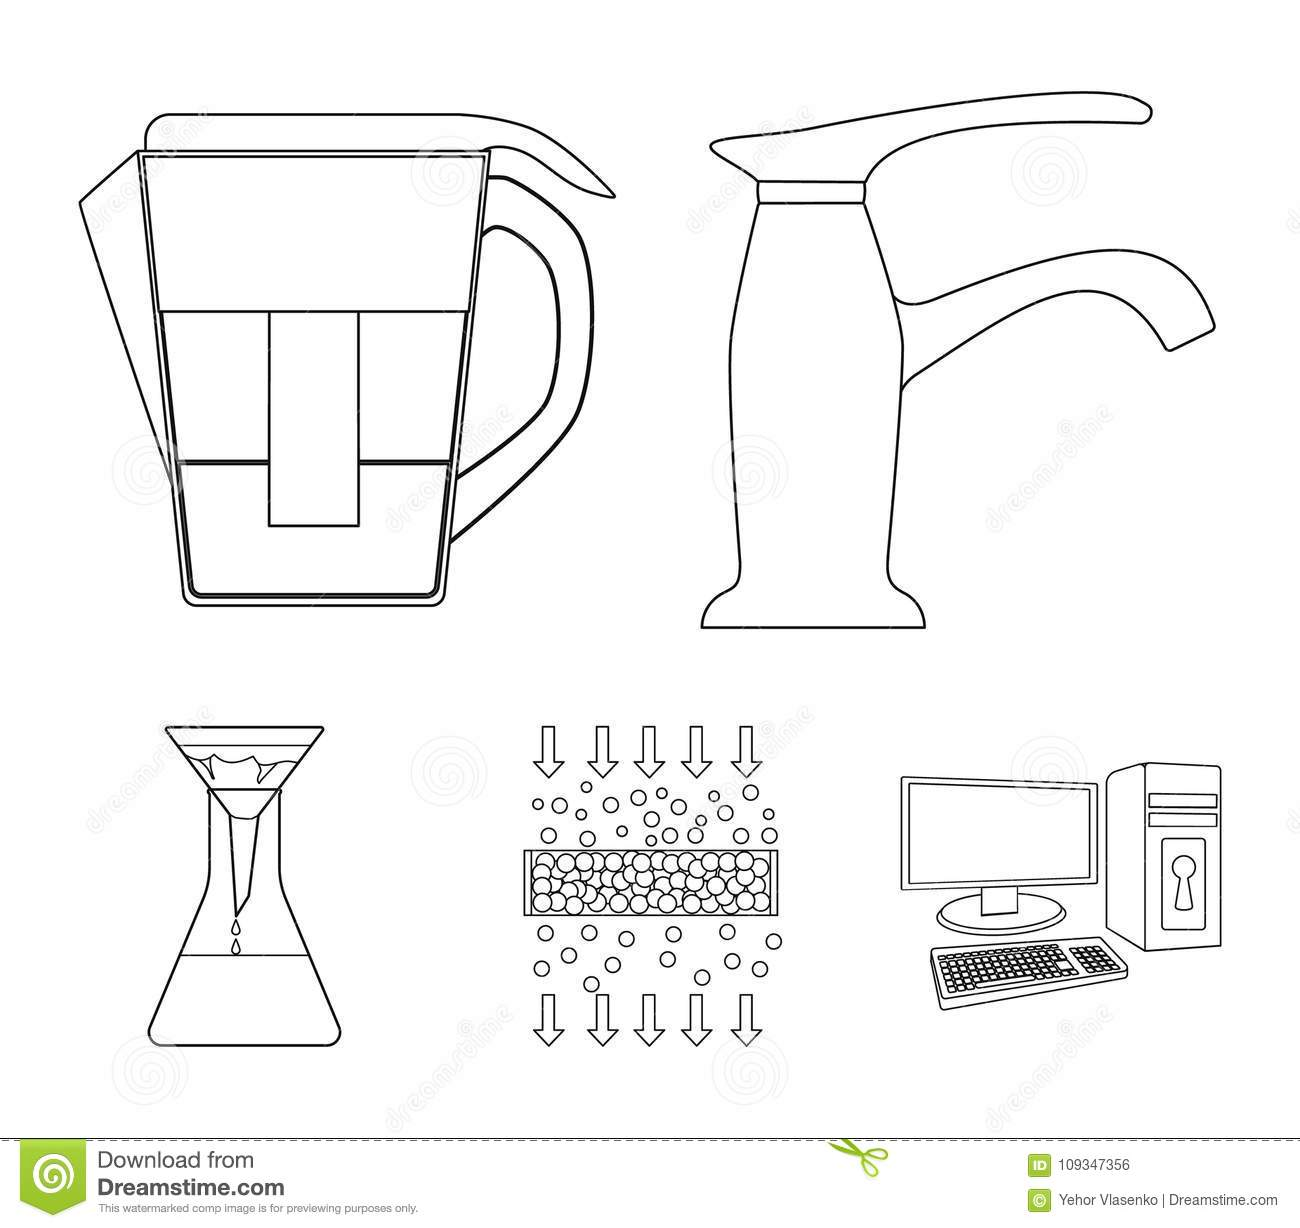 Filter Filtration Nature Eco Bio Water System Set Diagram Collection Icons